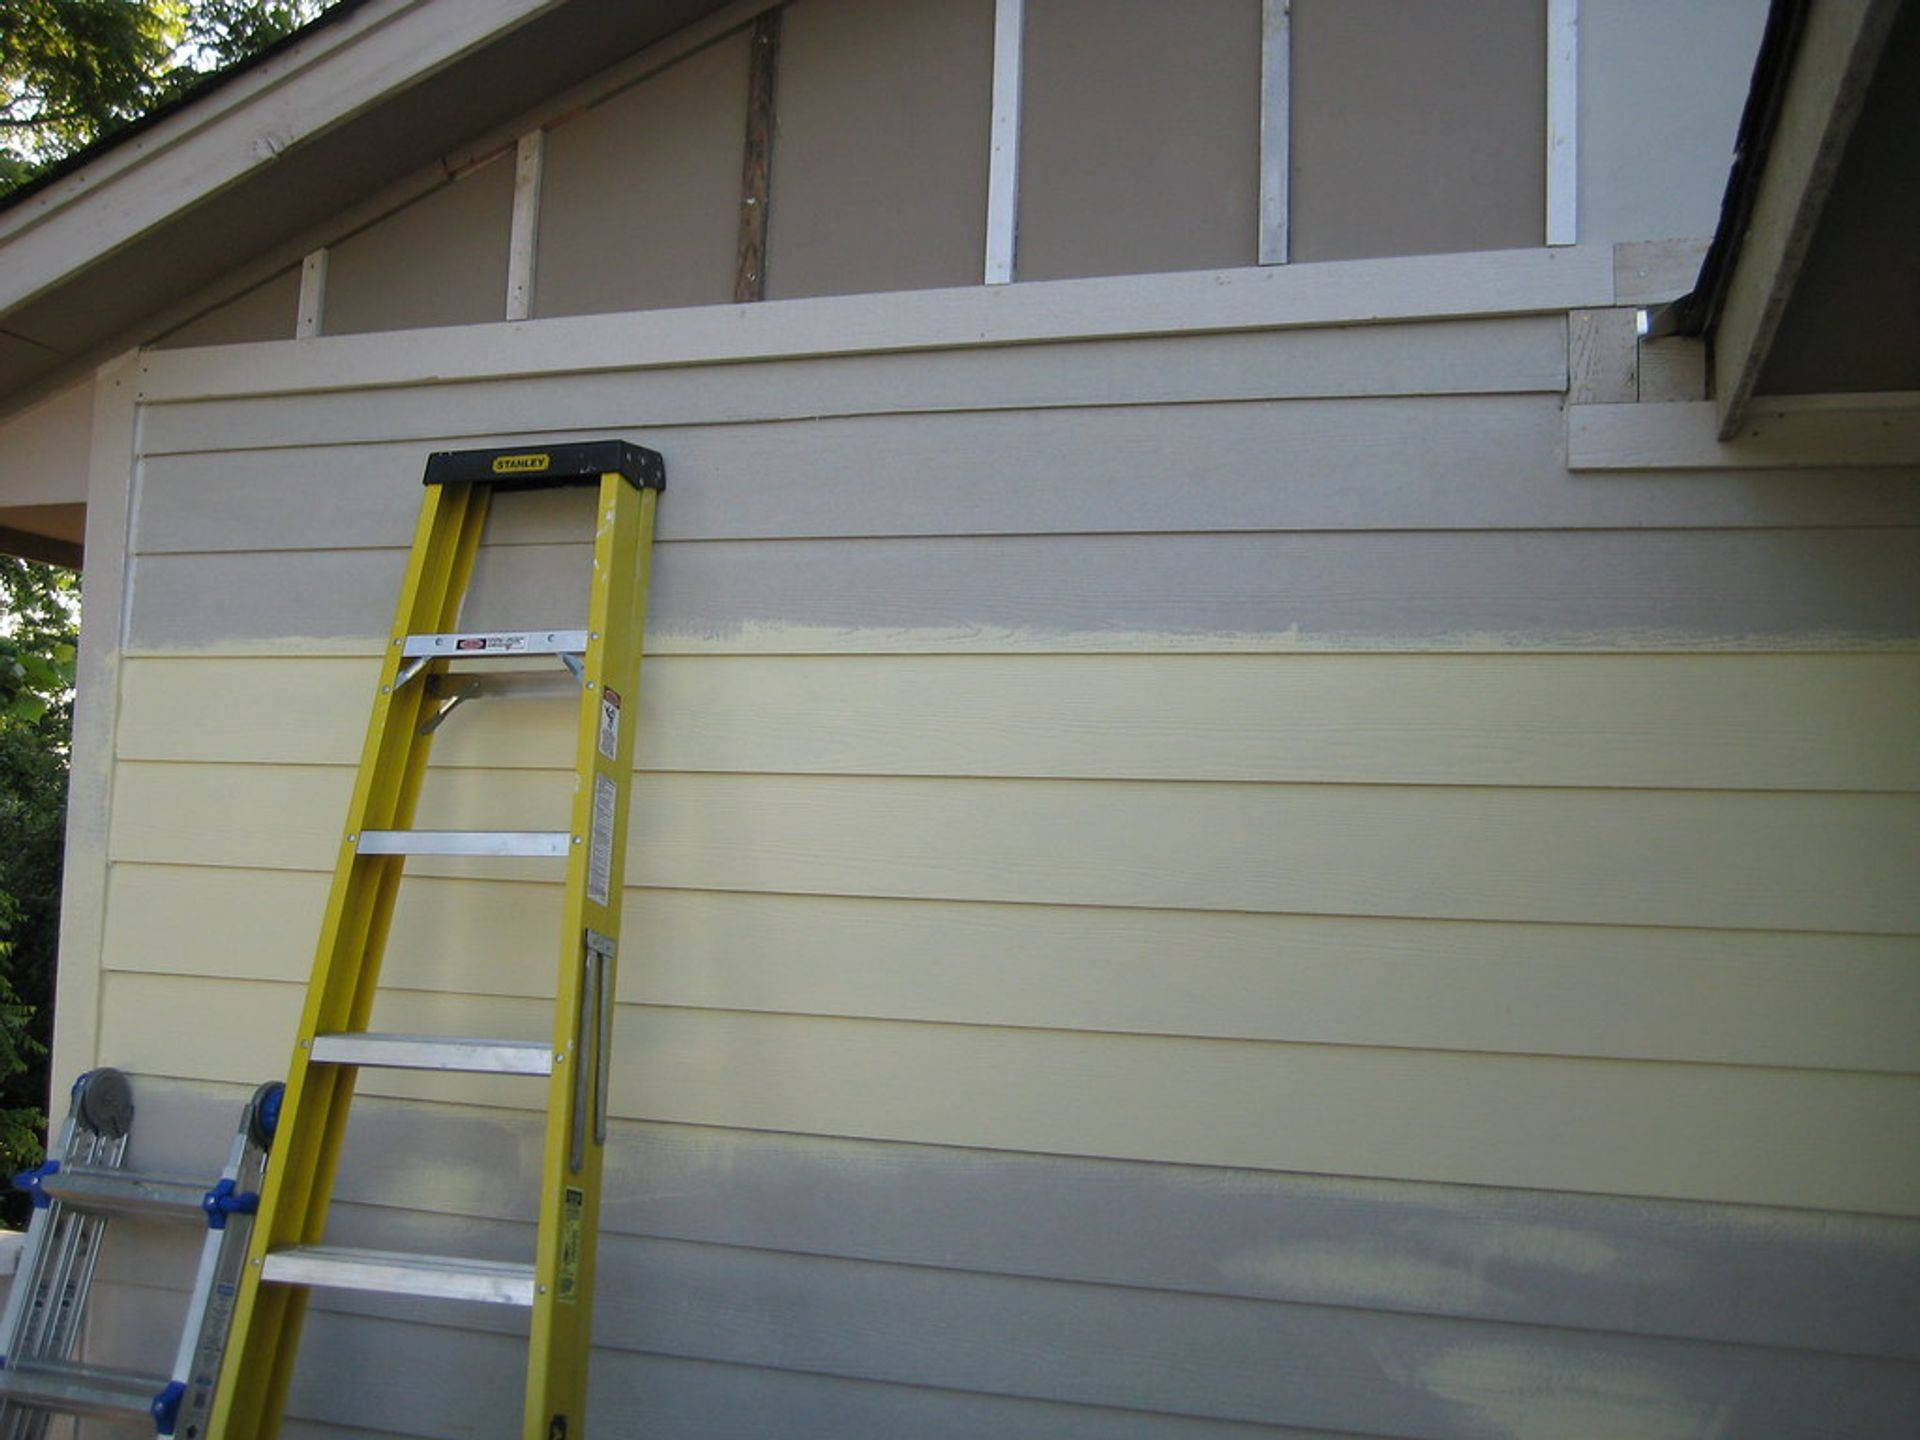 exterior painting being performed on outside of house